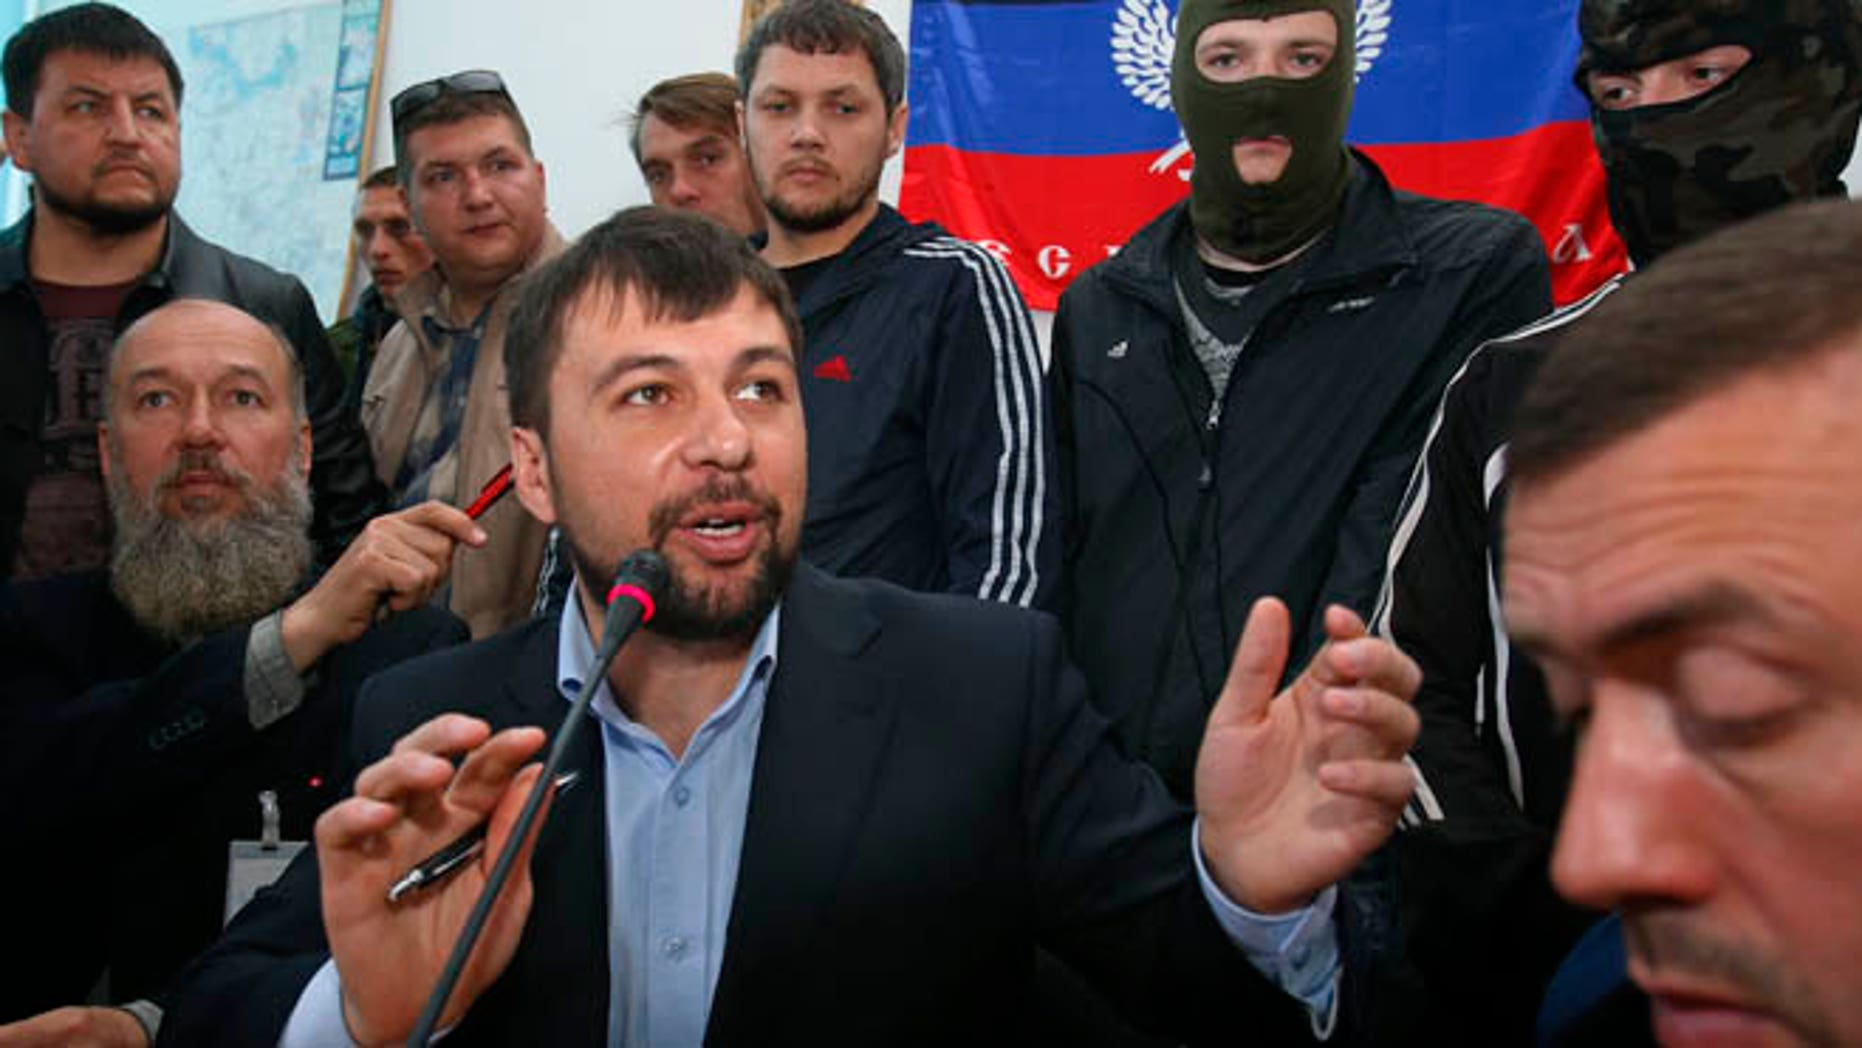 April 18, 2014: Denis Pushilin, foreground center,  spokesman of the self-appointed Donetsk Peoples Republic, speaks to reporters inside the regional administration building seized earlier in Donetsk, Ukraine.